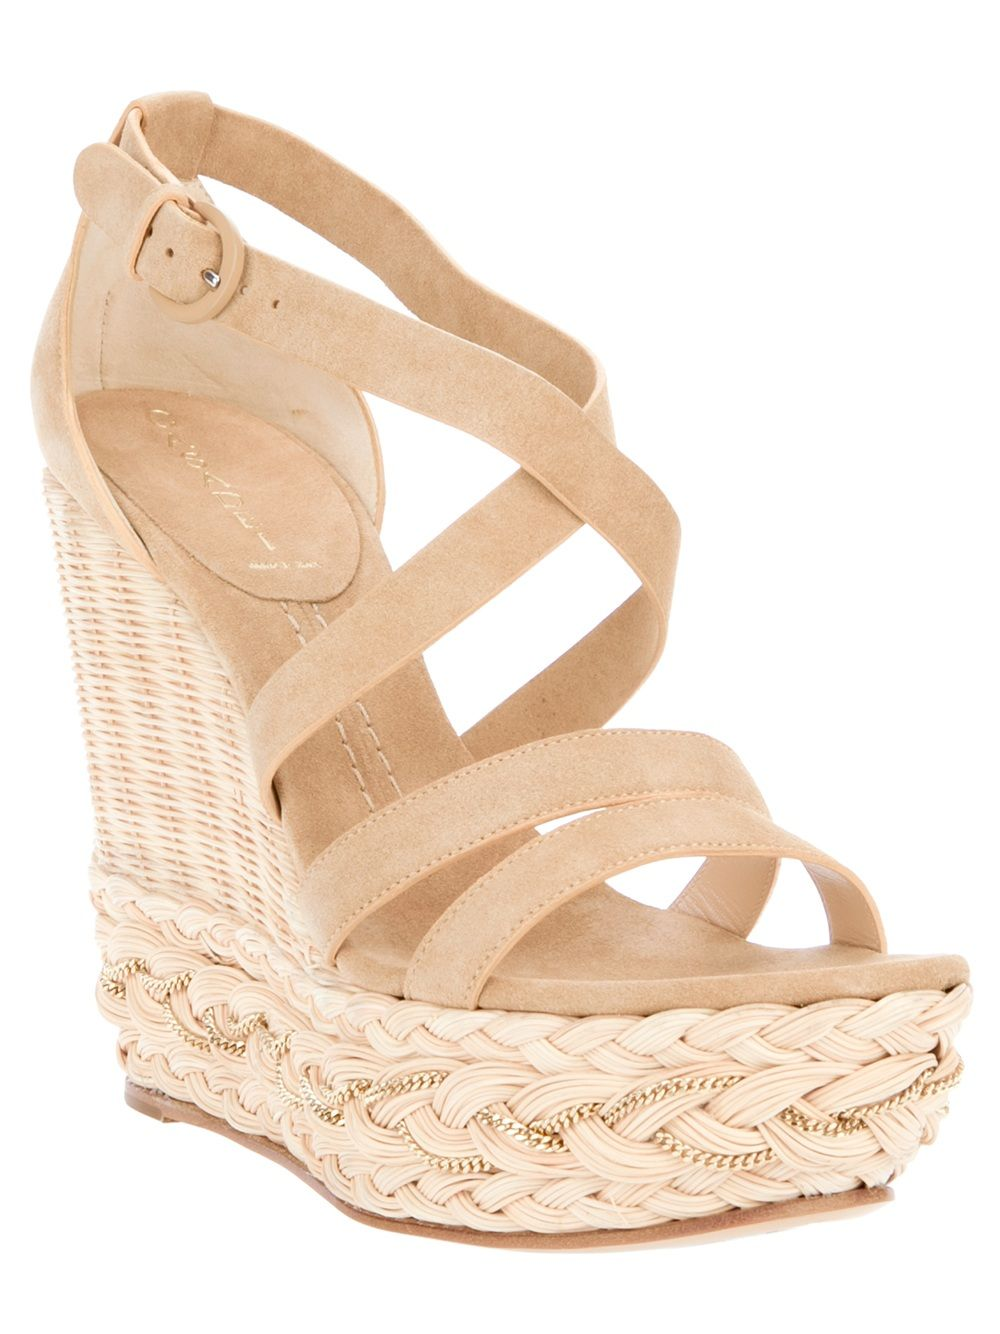 32494e2bac559 Nude Tan Strappy Wedge sandals with a weave on part of the back heel. The  very bottom part of the shoes are woven straw mesh.